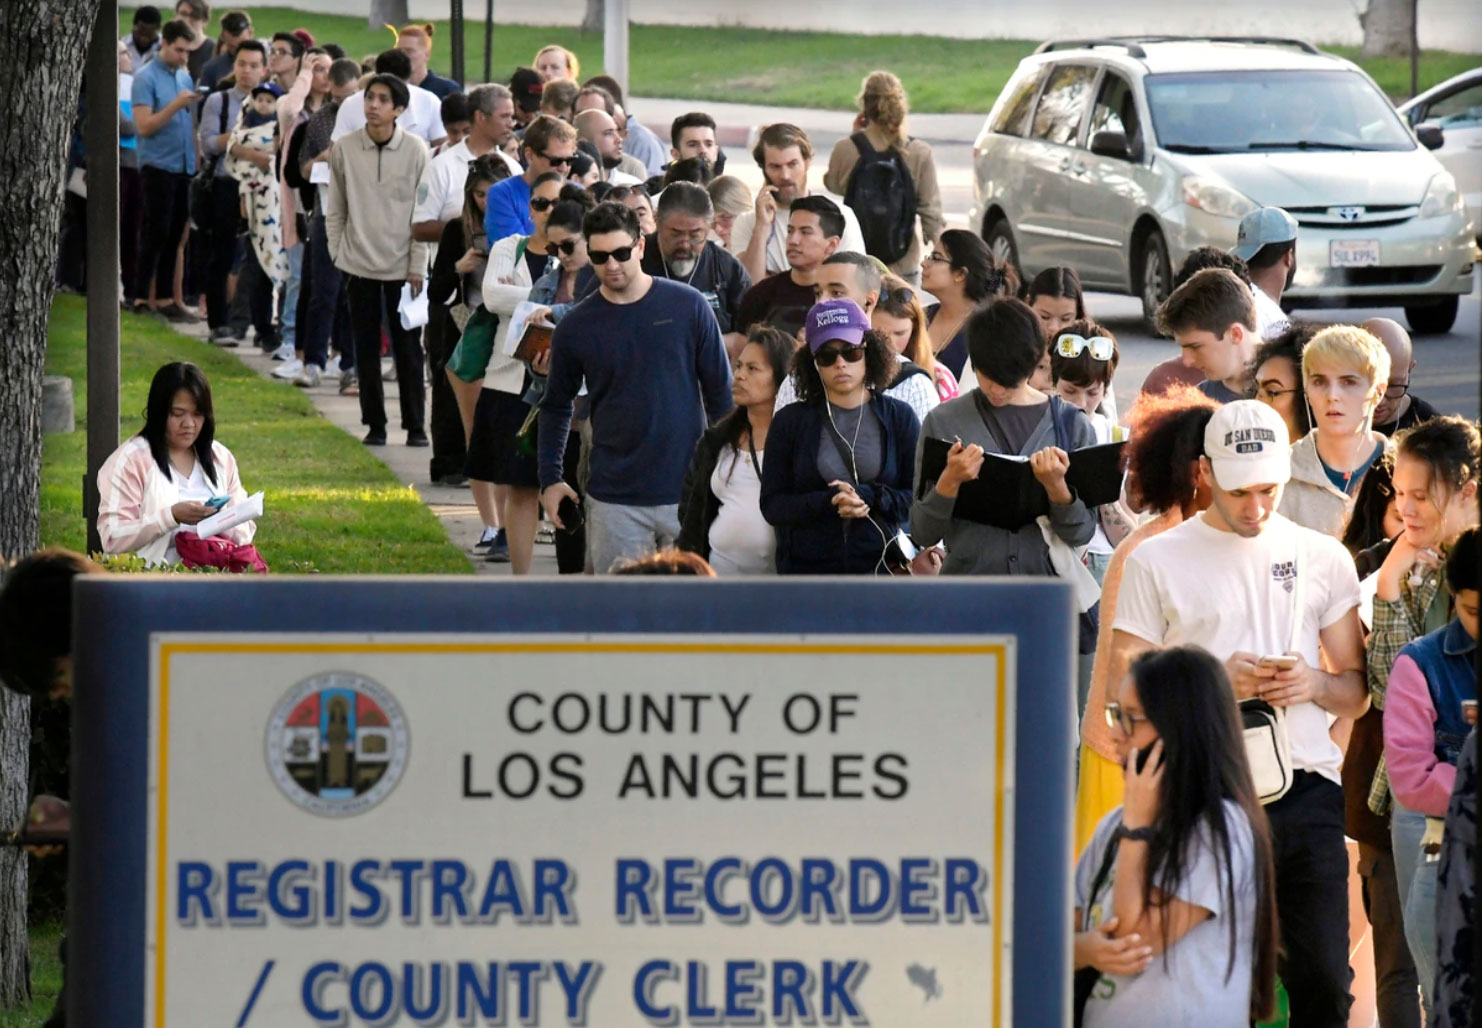 In this Nov. 6, 2018 file photo, potential voters wait in long lines to register and vote at the Los Angeles County Registrar's office in Los Angeles. A pair of propositions on California's November 2020 ballot would expand voting rights in California - restoring the vote for parolees and allowing 17-year-olds to vote in primaries if they turn 18 before the general election. (Source: AP Photo/Mark J. Terrill, File)